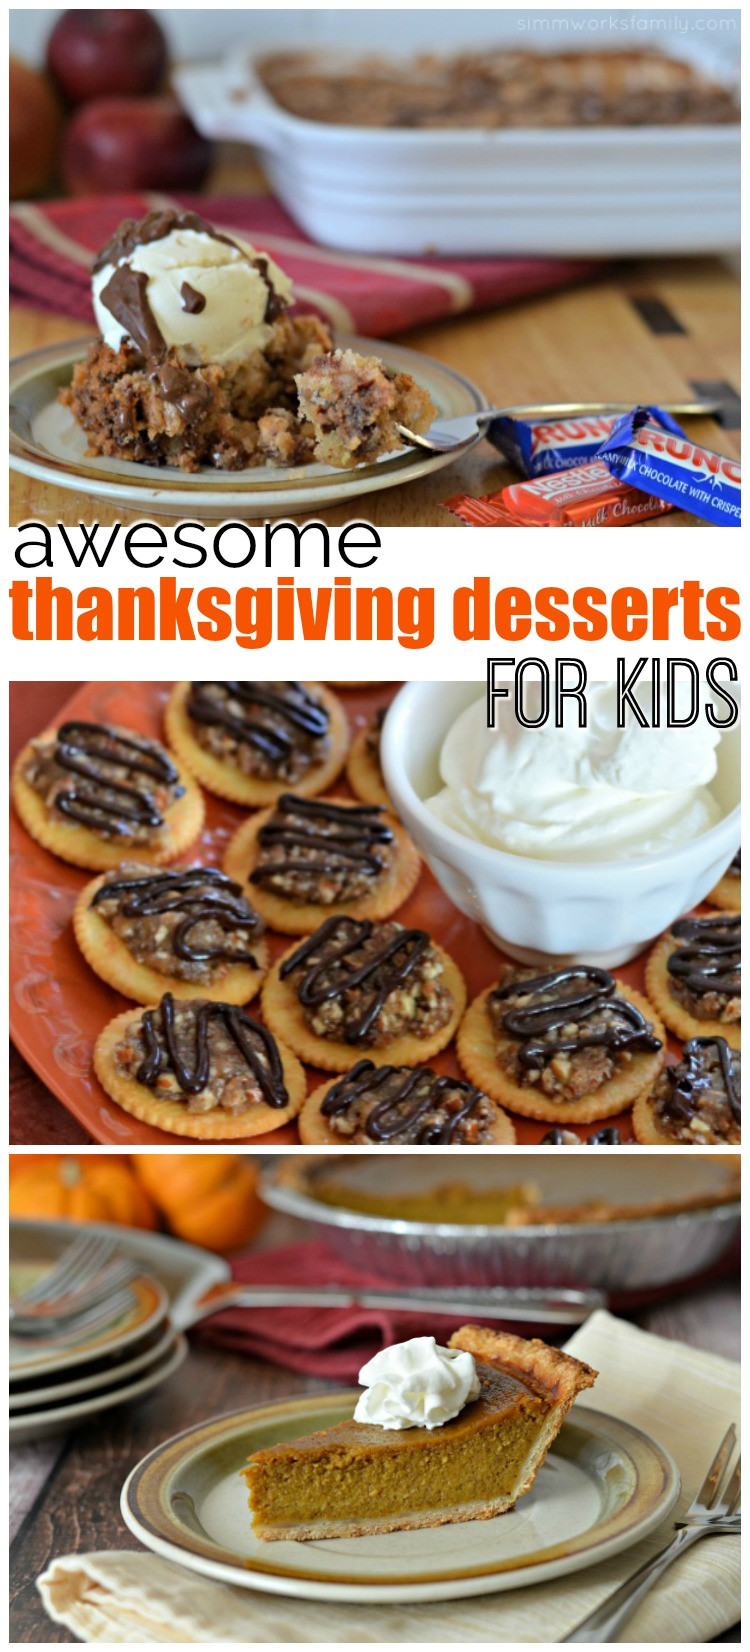 Awesome Thanksgiving Desserts  How to Make 11 Awesome Thanksgiving Desserts For Kids